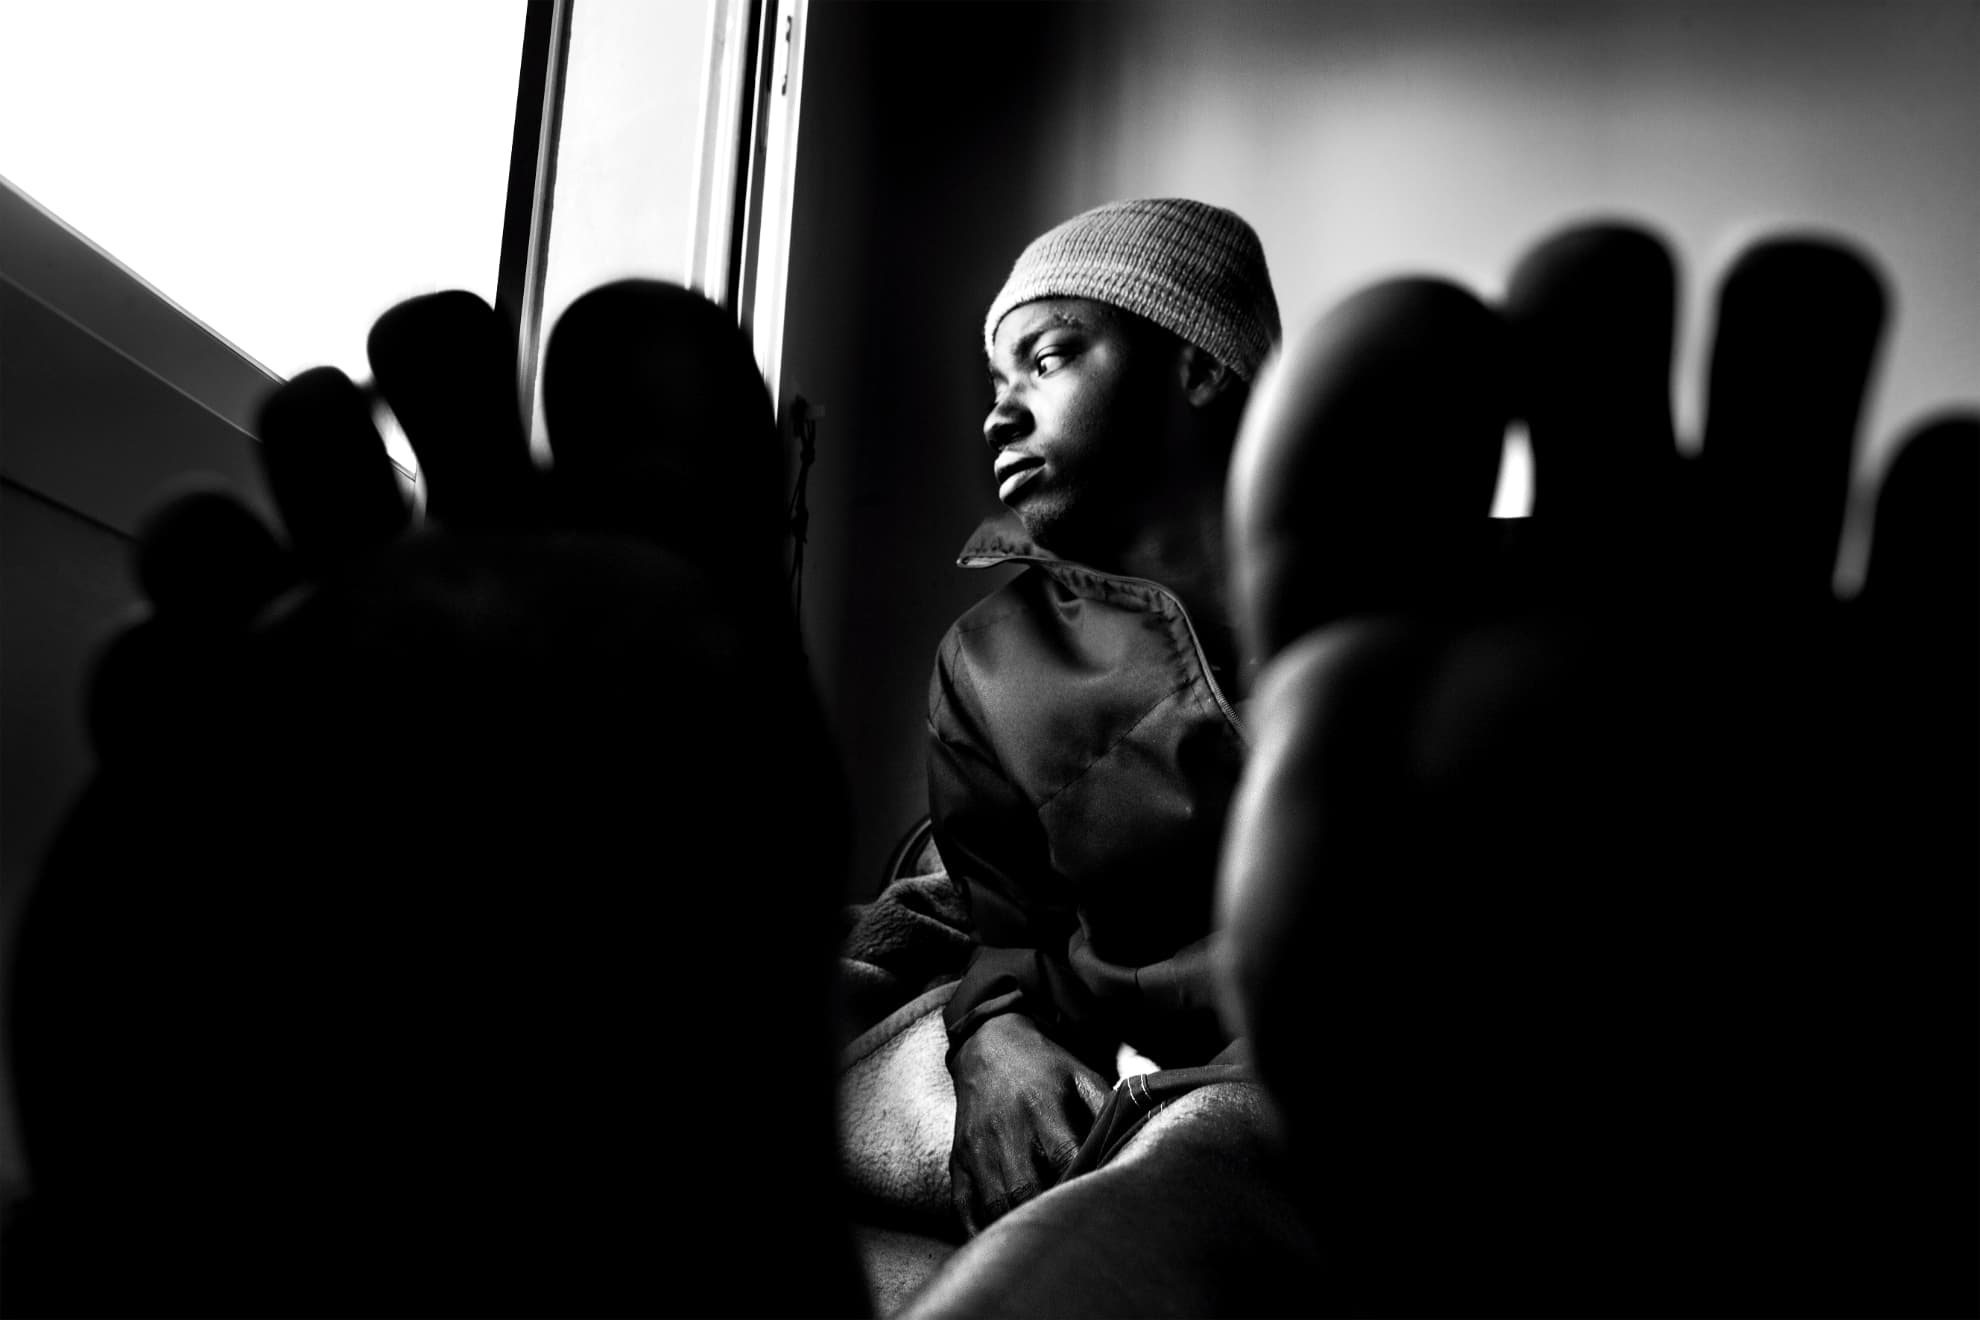 Mohamed, from the Gambia, waits to recover in the hospital in Nador. He broke his foot while attempting to jump the fence between Morocco and Melilla.